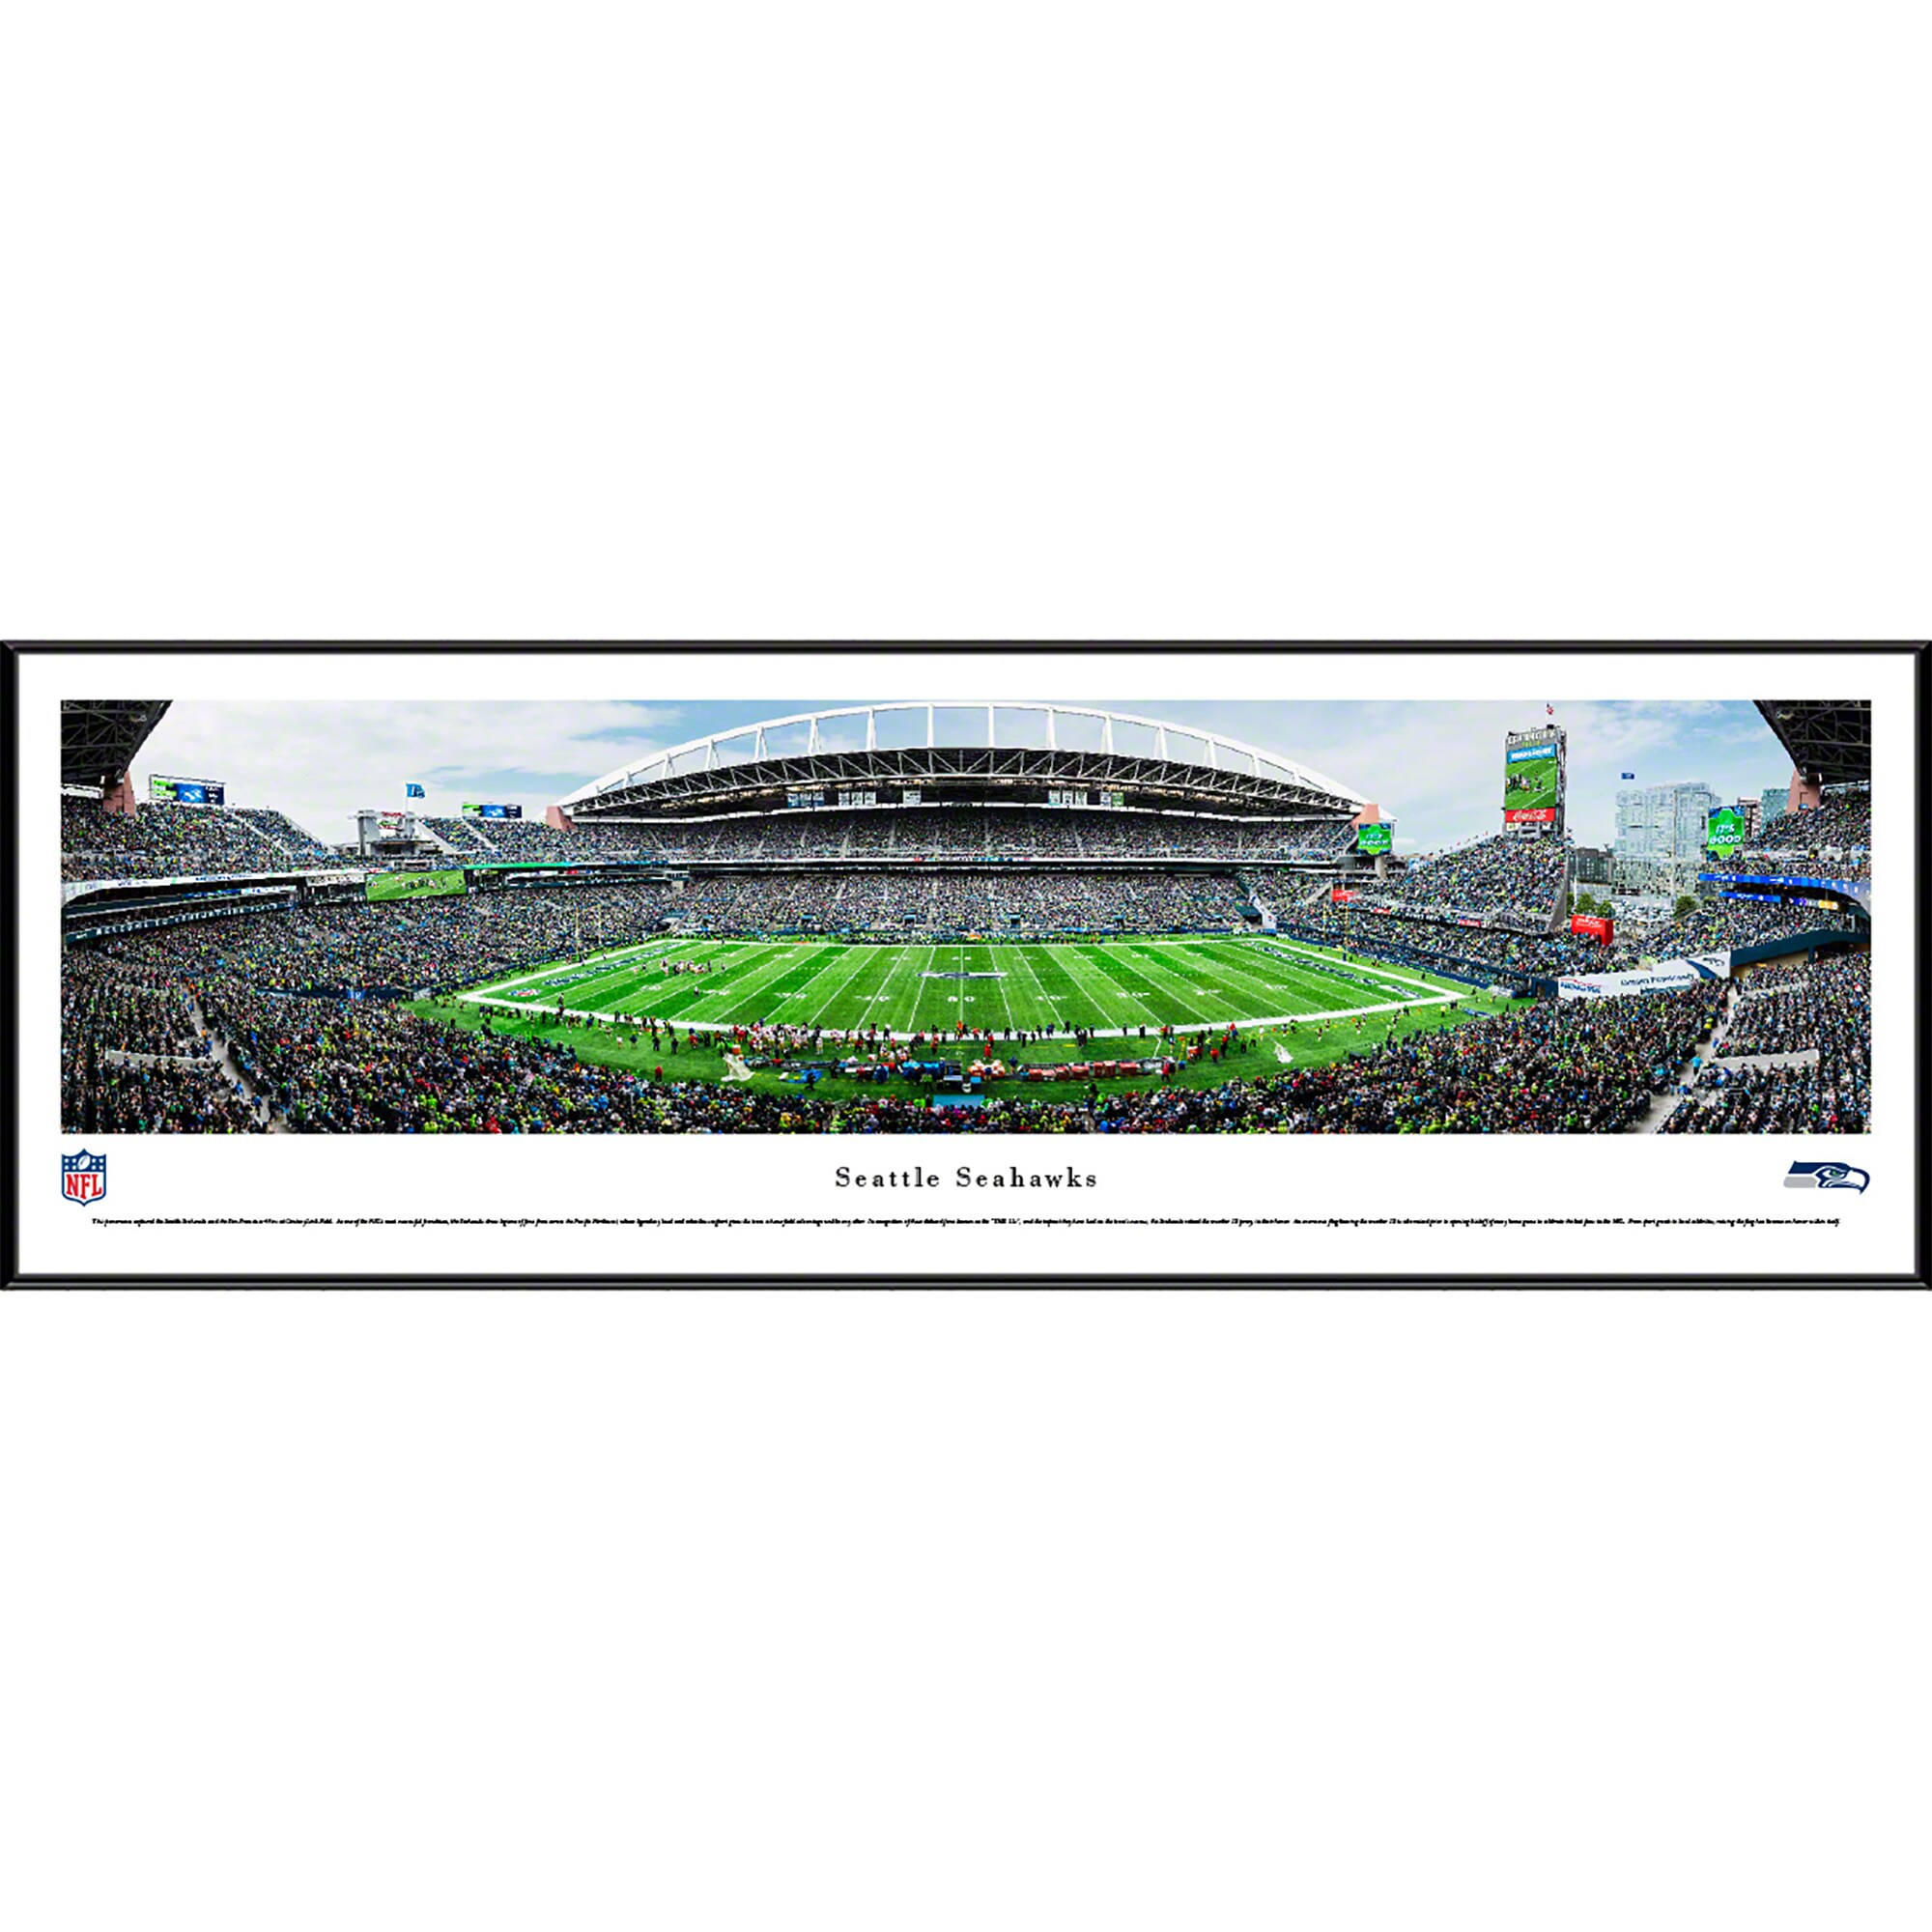 "Seattle Seahawks 40.25"" x 13.75"" 50-Yard Line Standard Framed Panoramic"